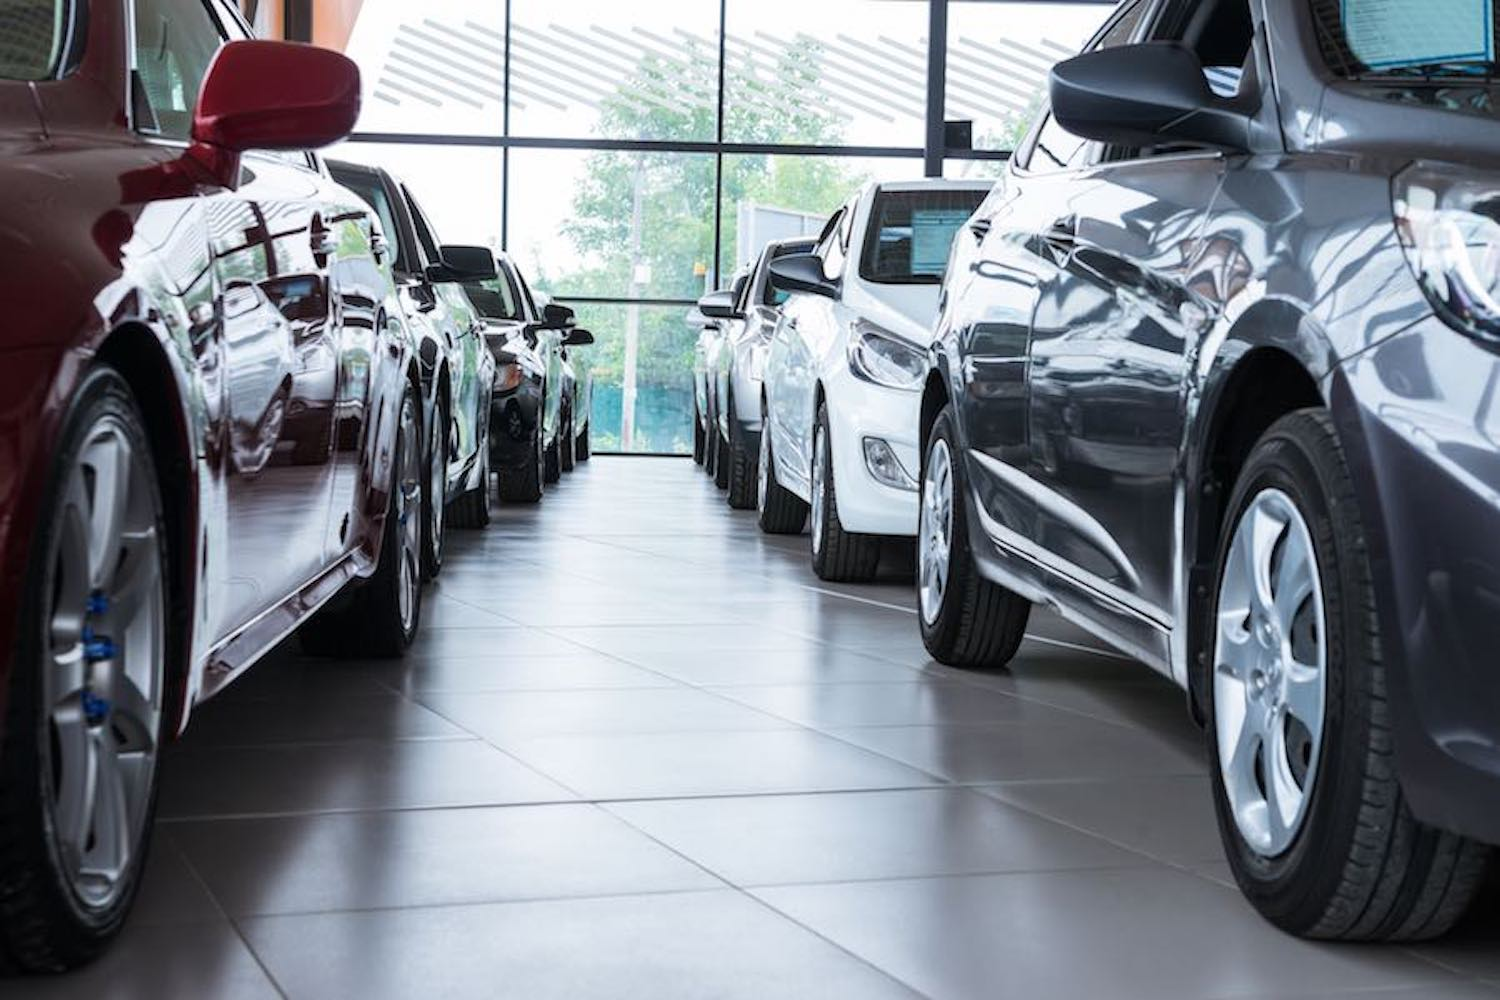 Car News | Crunch time for Irish motor industry as sales stall | CompleteCar.ie